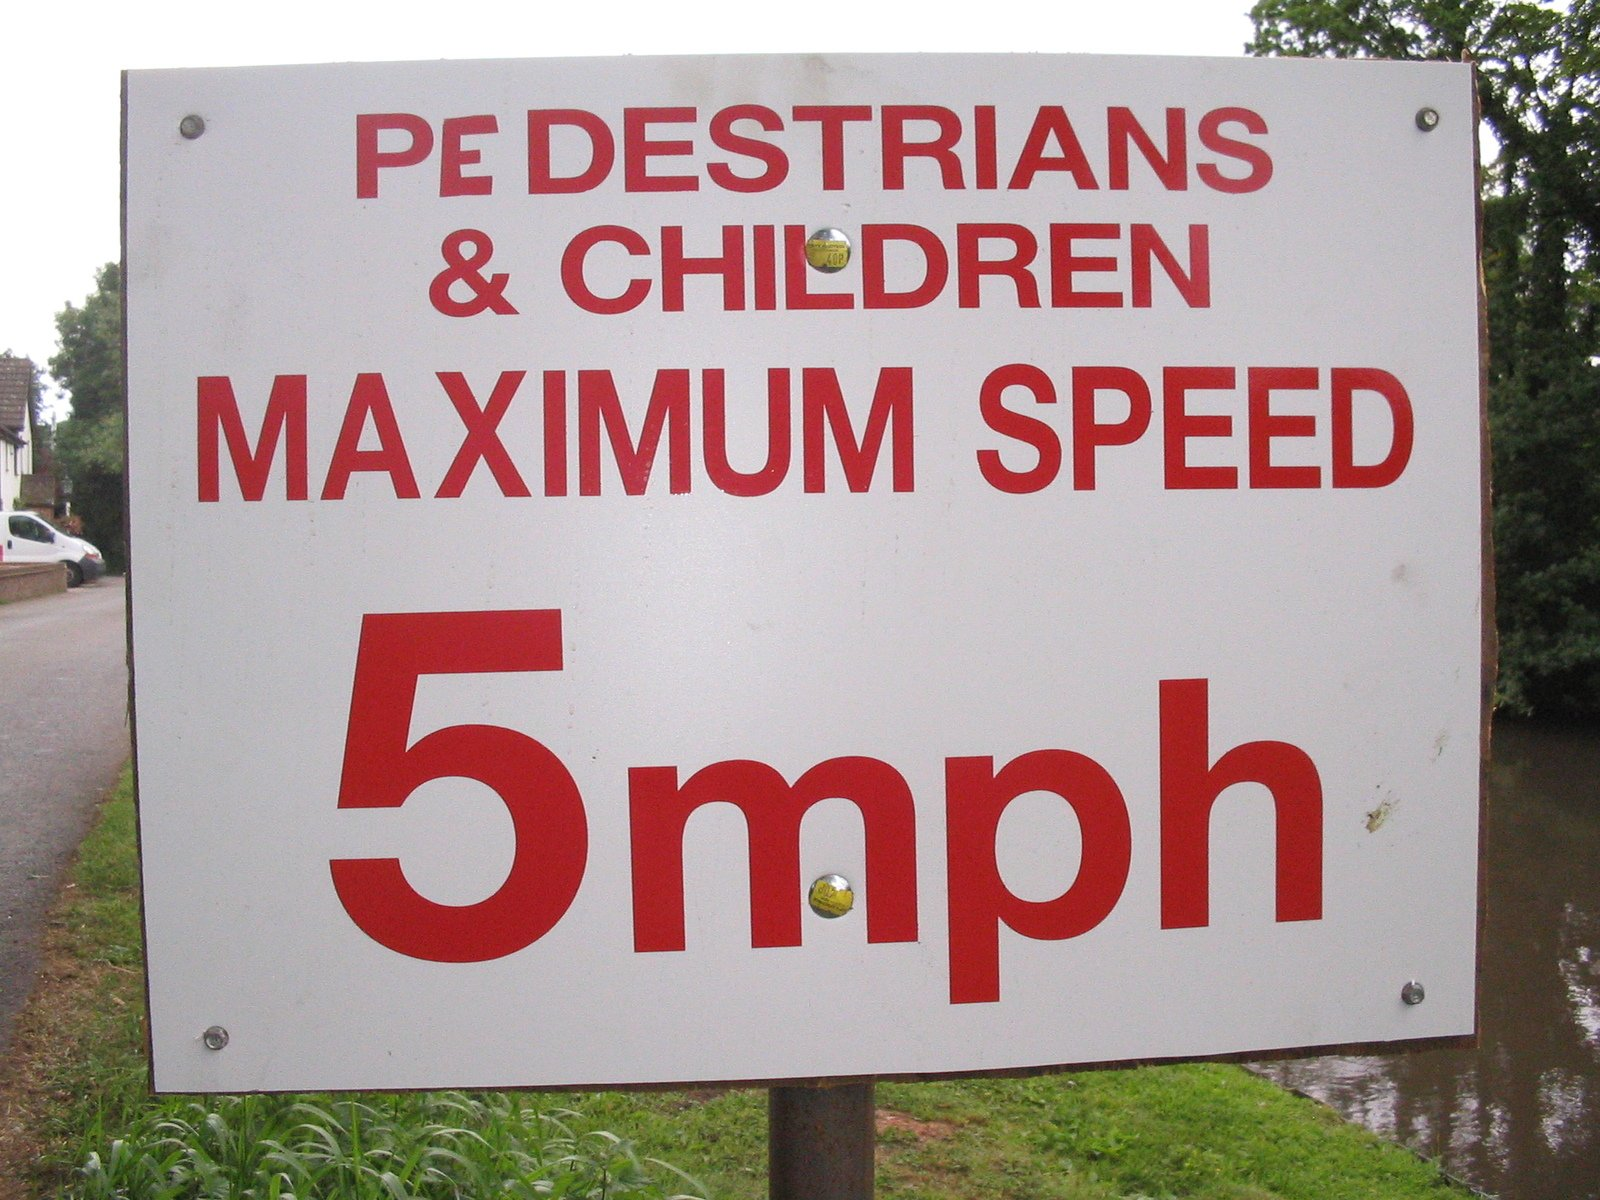 Low maximum speed